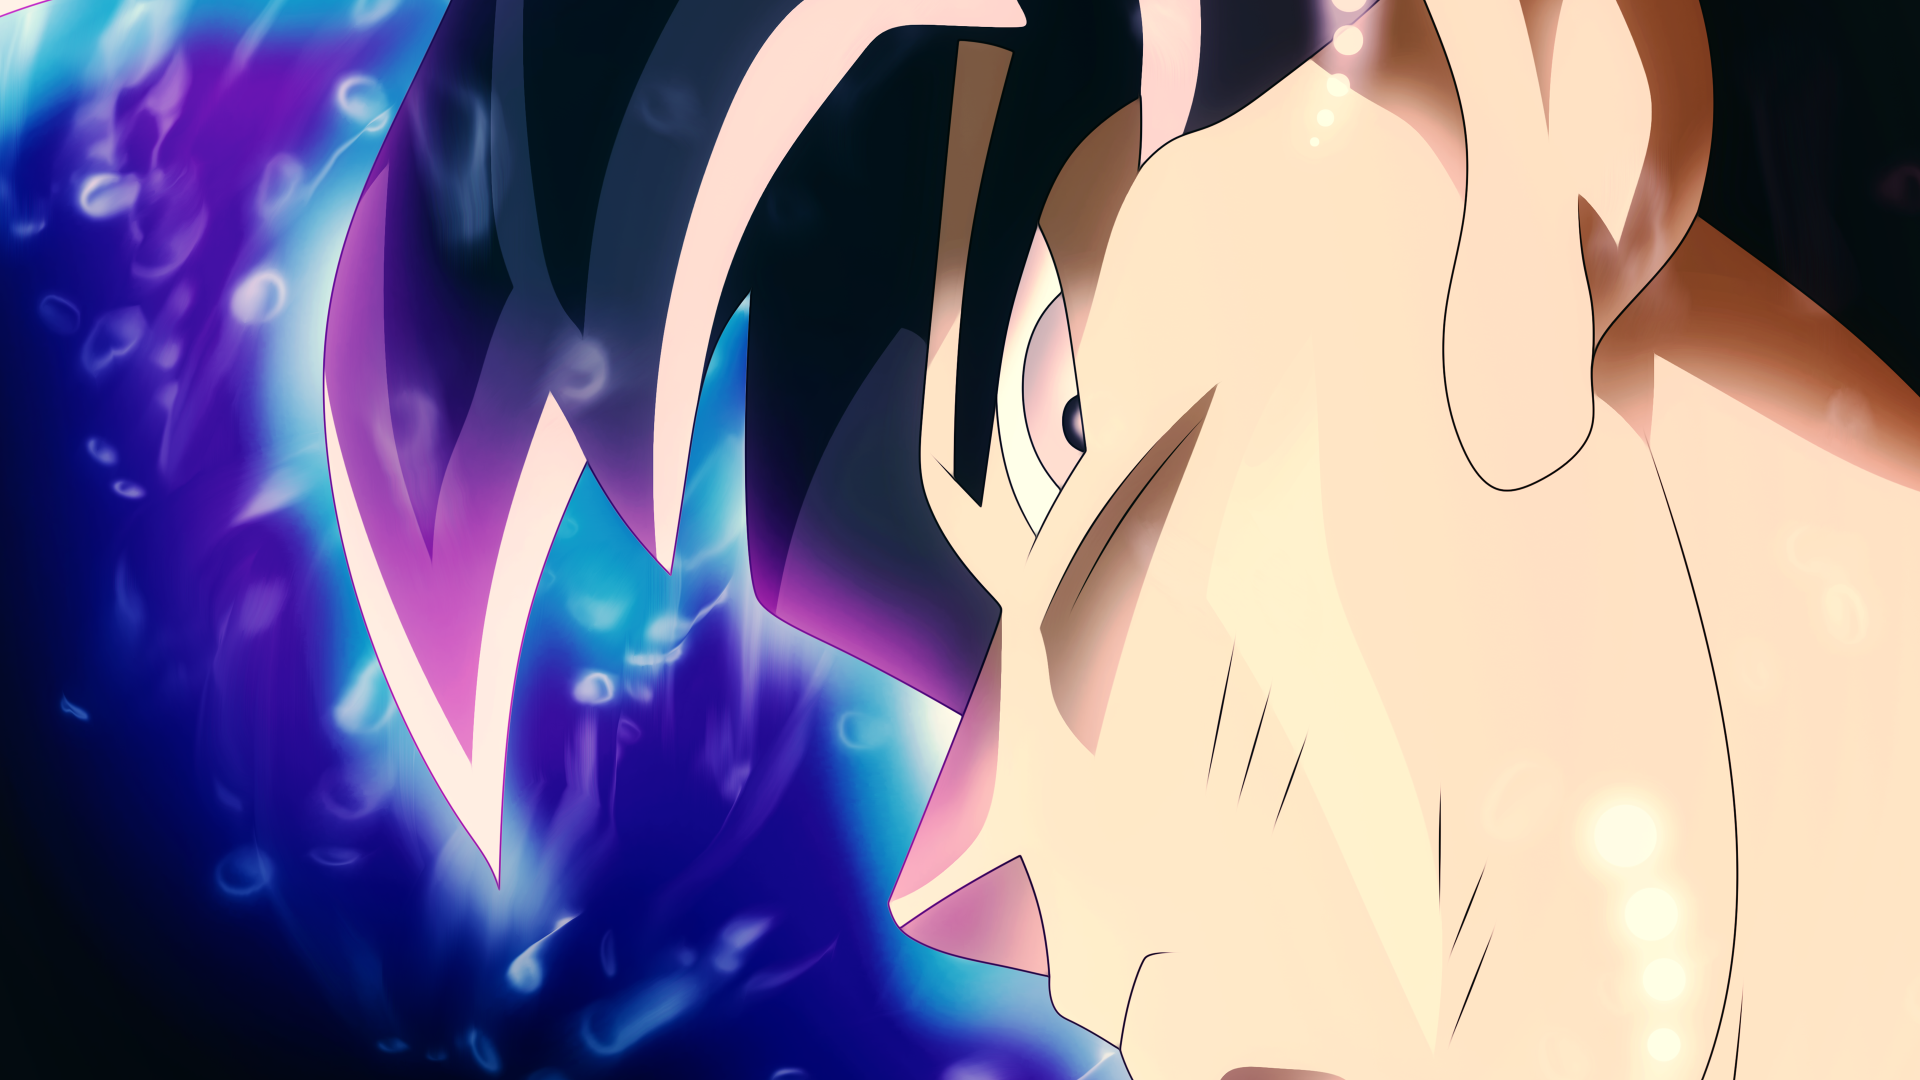 Ultra instinct goku 4k ultra hd fondo de pantalla and for Fondo de pantalla 4k anime